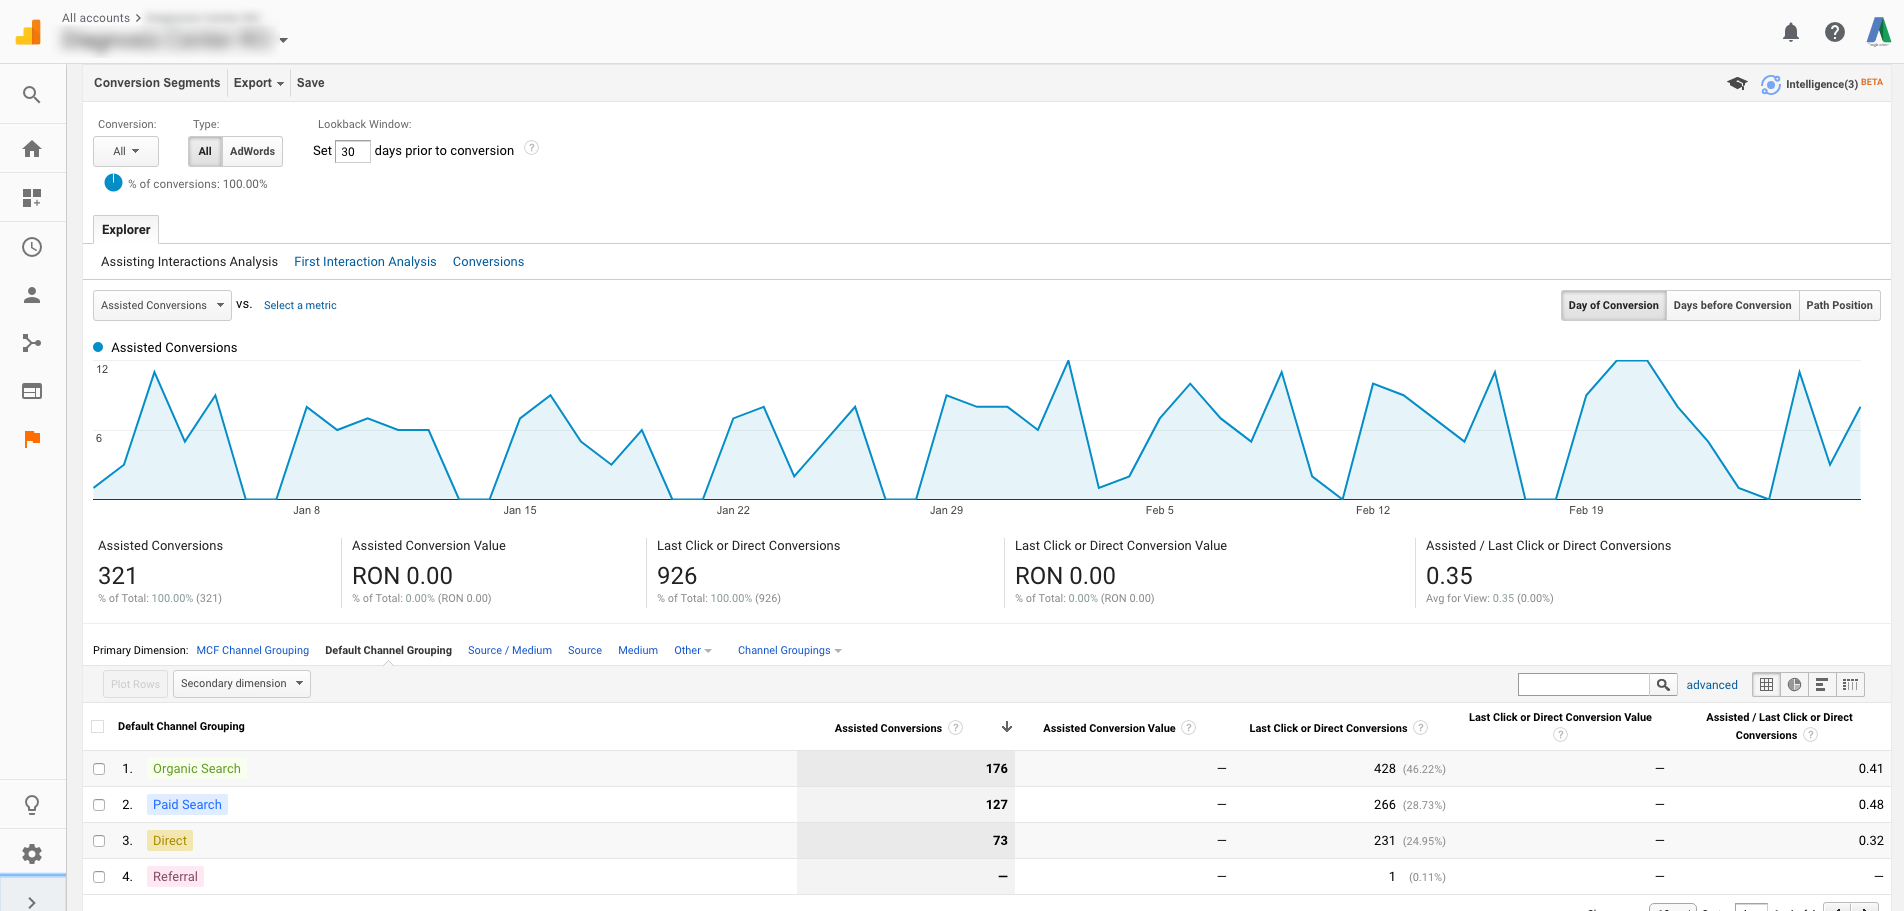 Assisted Conversions - Google Analytics Call Tracking